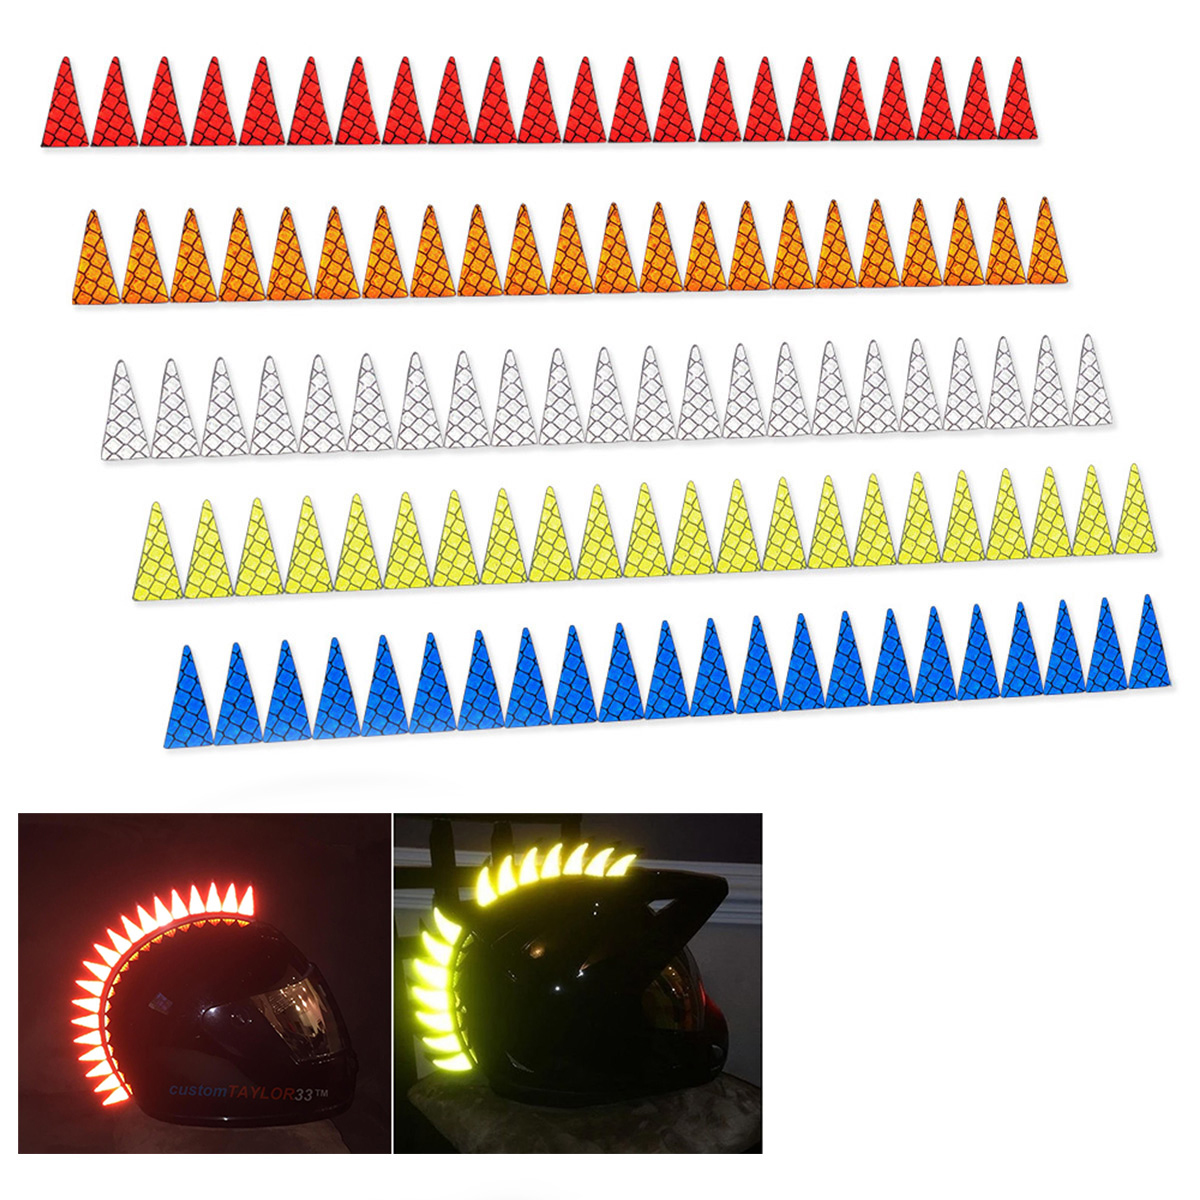 22 Blades Mohawk Warhawk Spikes Saw Reflective Sticker Decals Fo